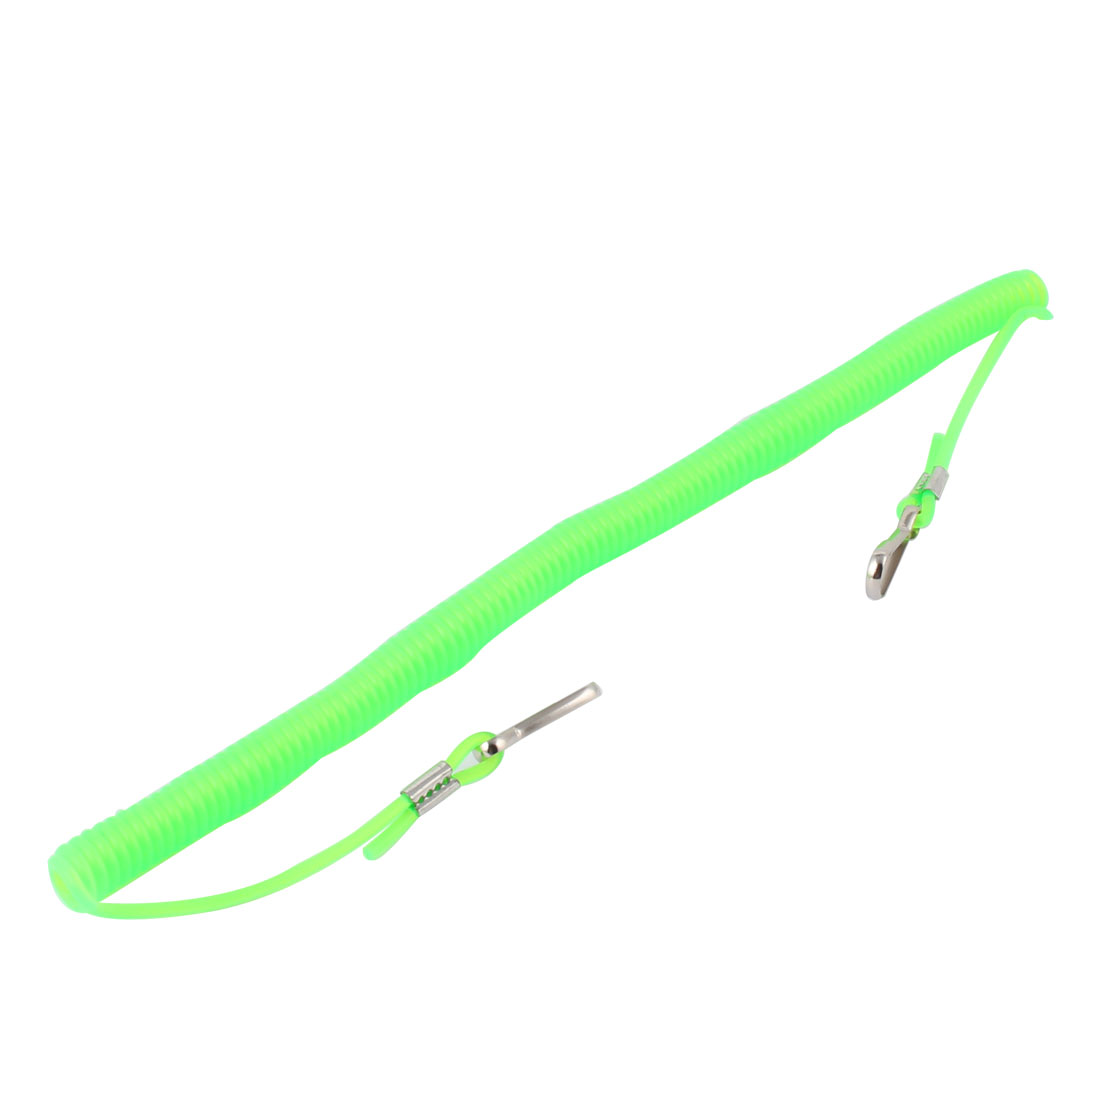 Fishing Contractility Metal Ended Plastic Coiled Rope Green 3 Meters Long